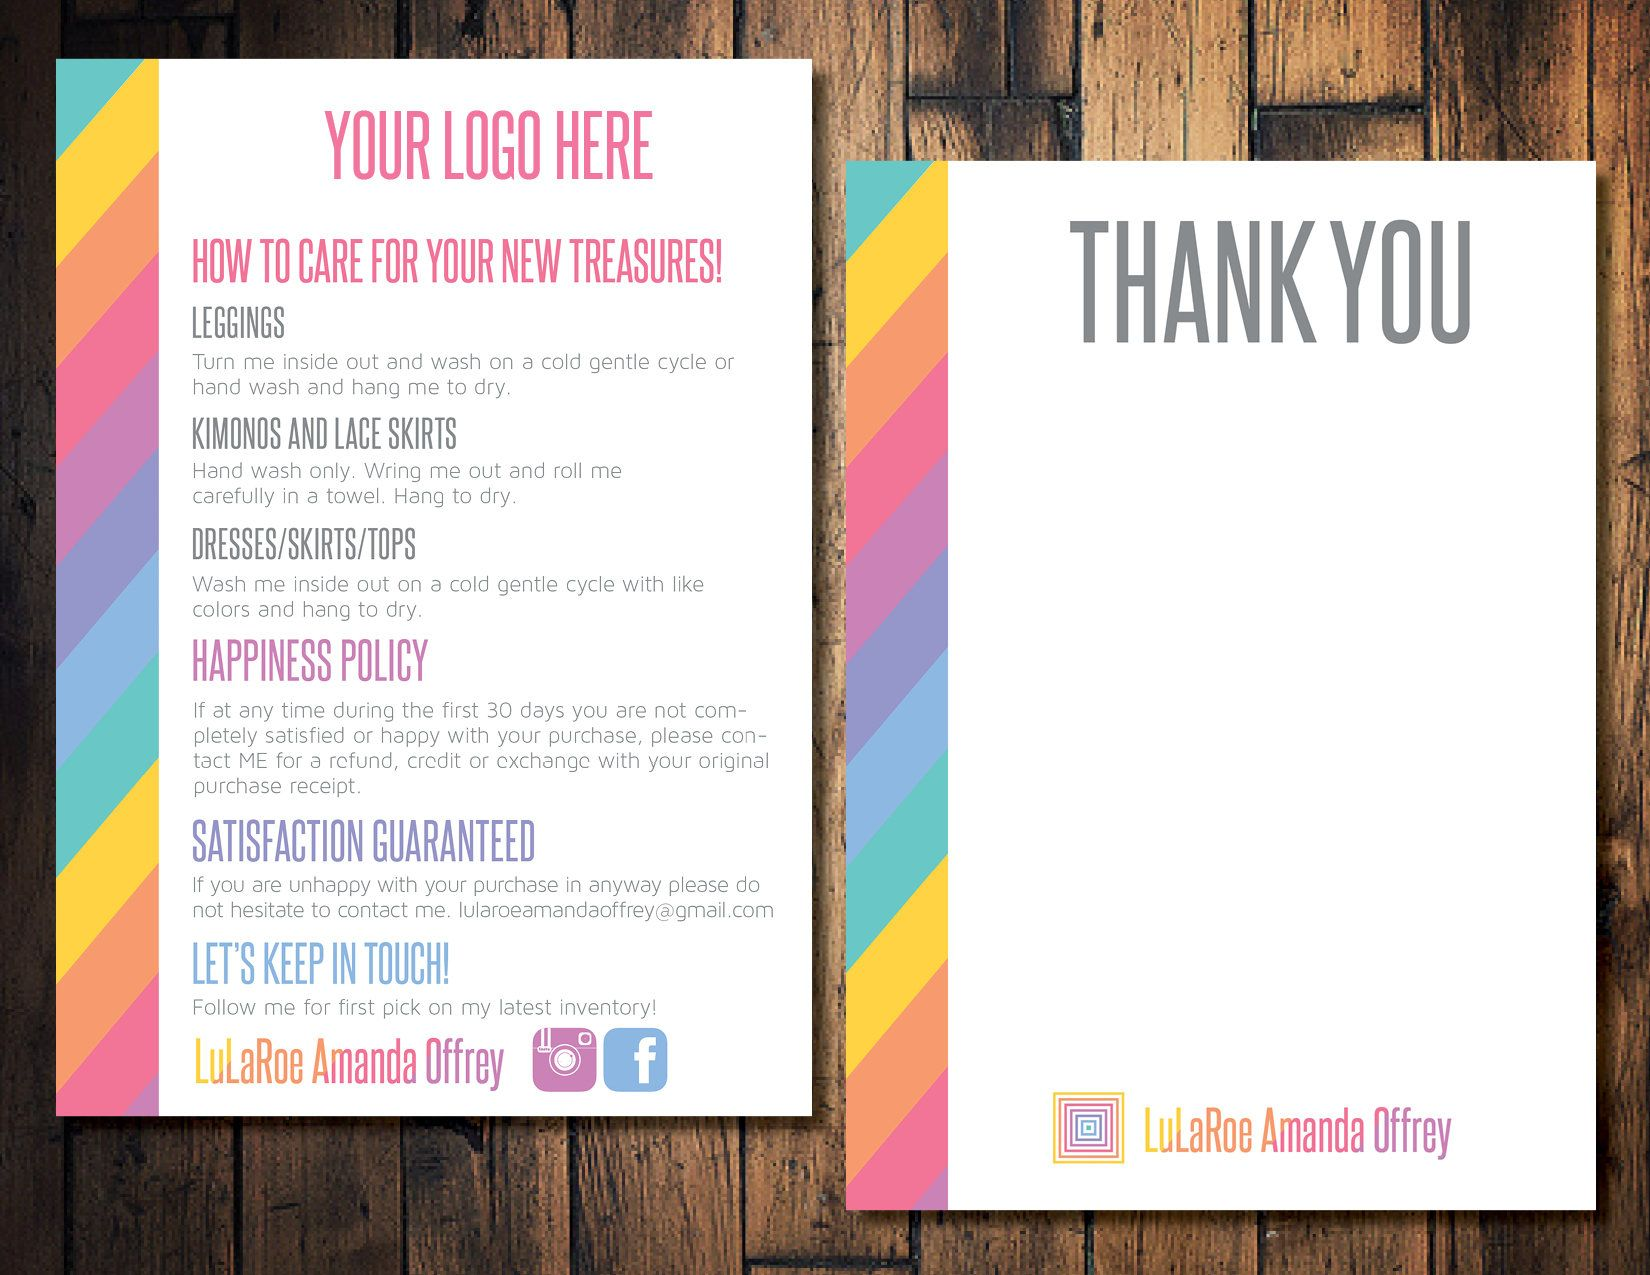 Clothing care card thank you card sales card sales blitz clothing care card thank you card sales card sales blitz return sales kristyandbryce Images